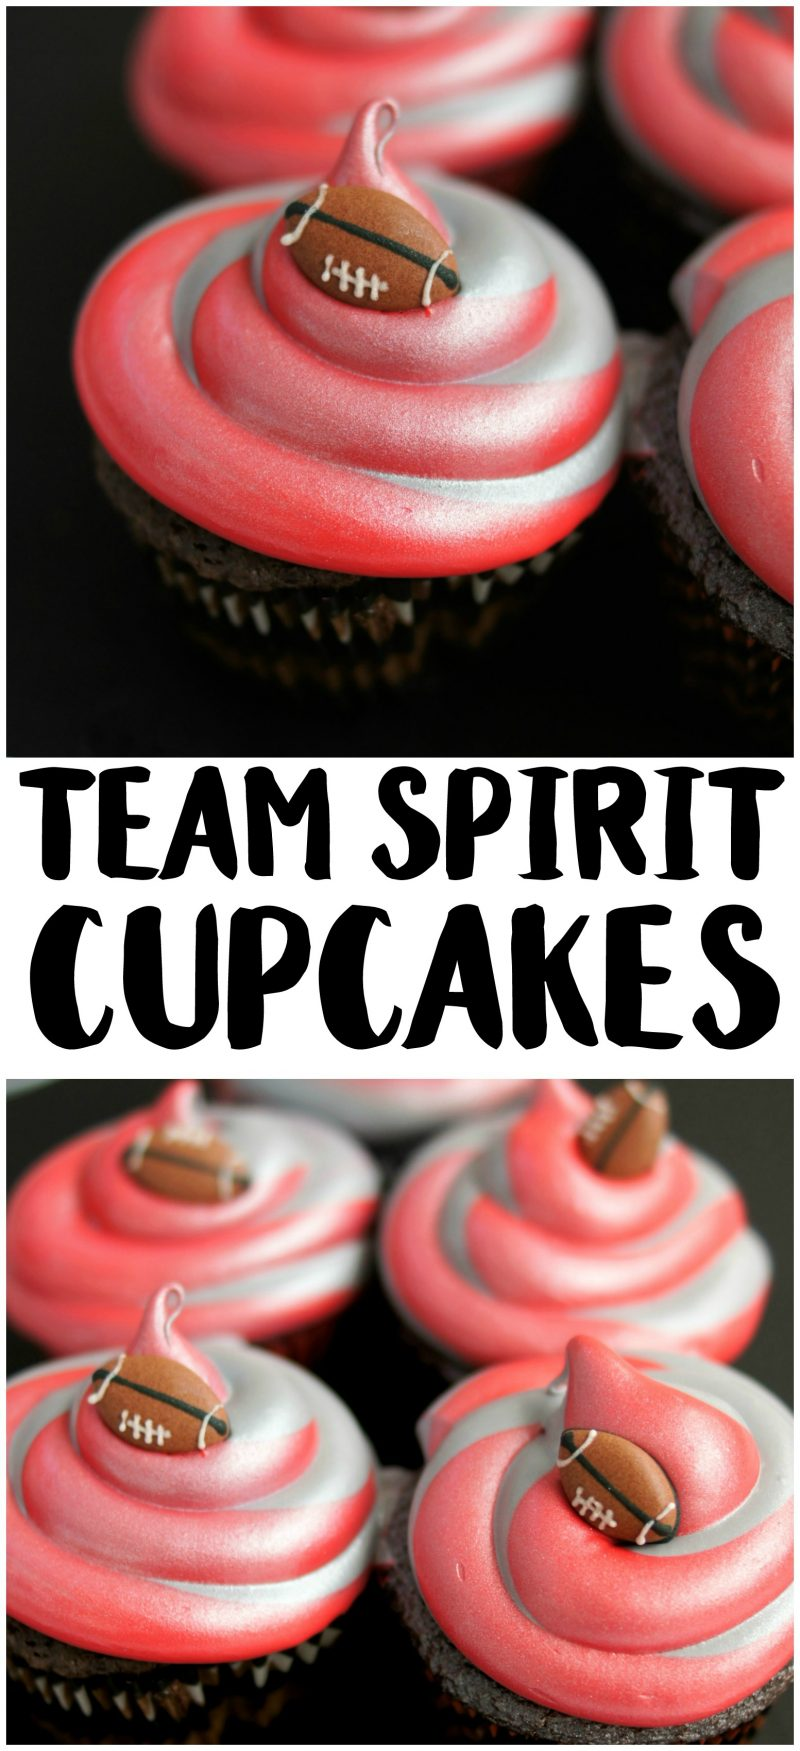 Looking for easy cupcakes ideas for the next football game or kids sports birthday party? These Team Spirit cupcakes are easy to DIY and can be customized with your favorite team's colors {whether it's the NFL or college} and your favorite cake flavor!